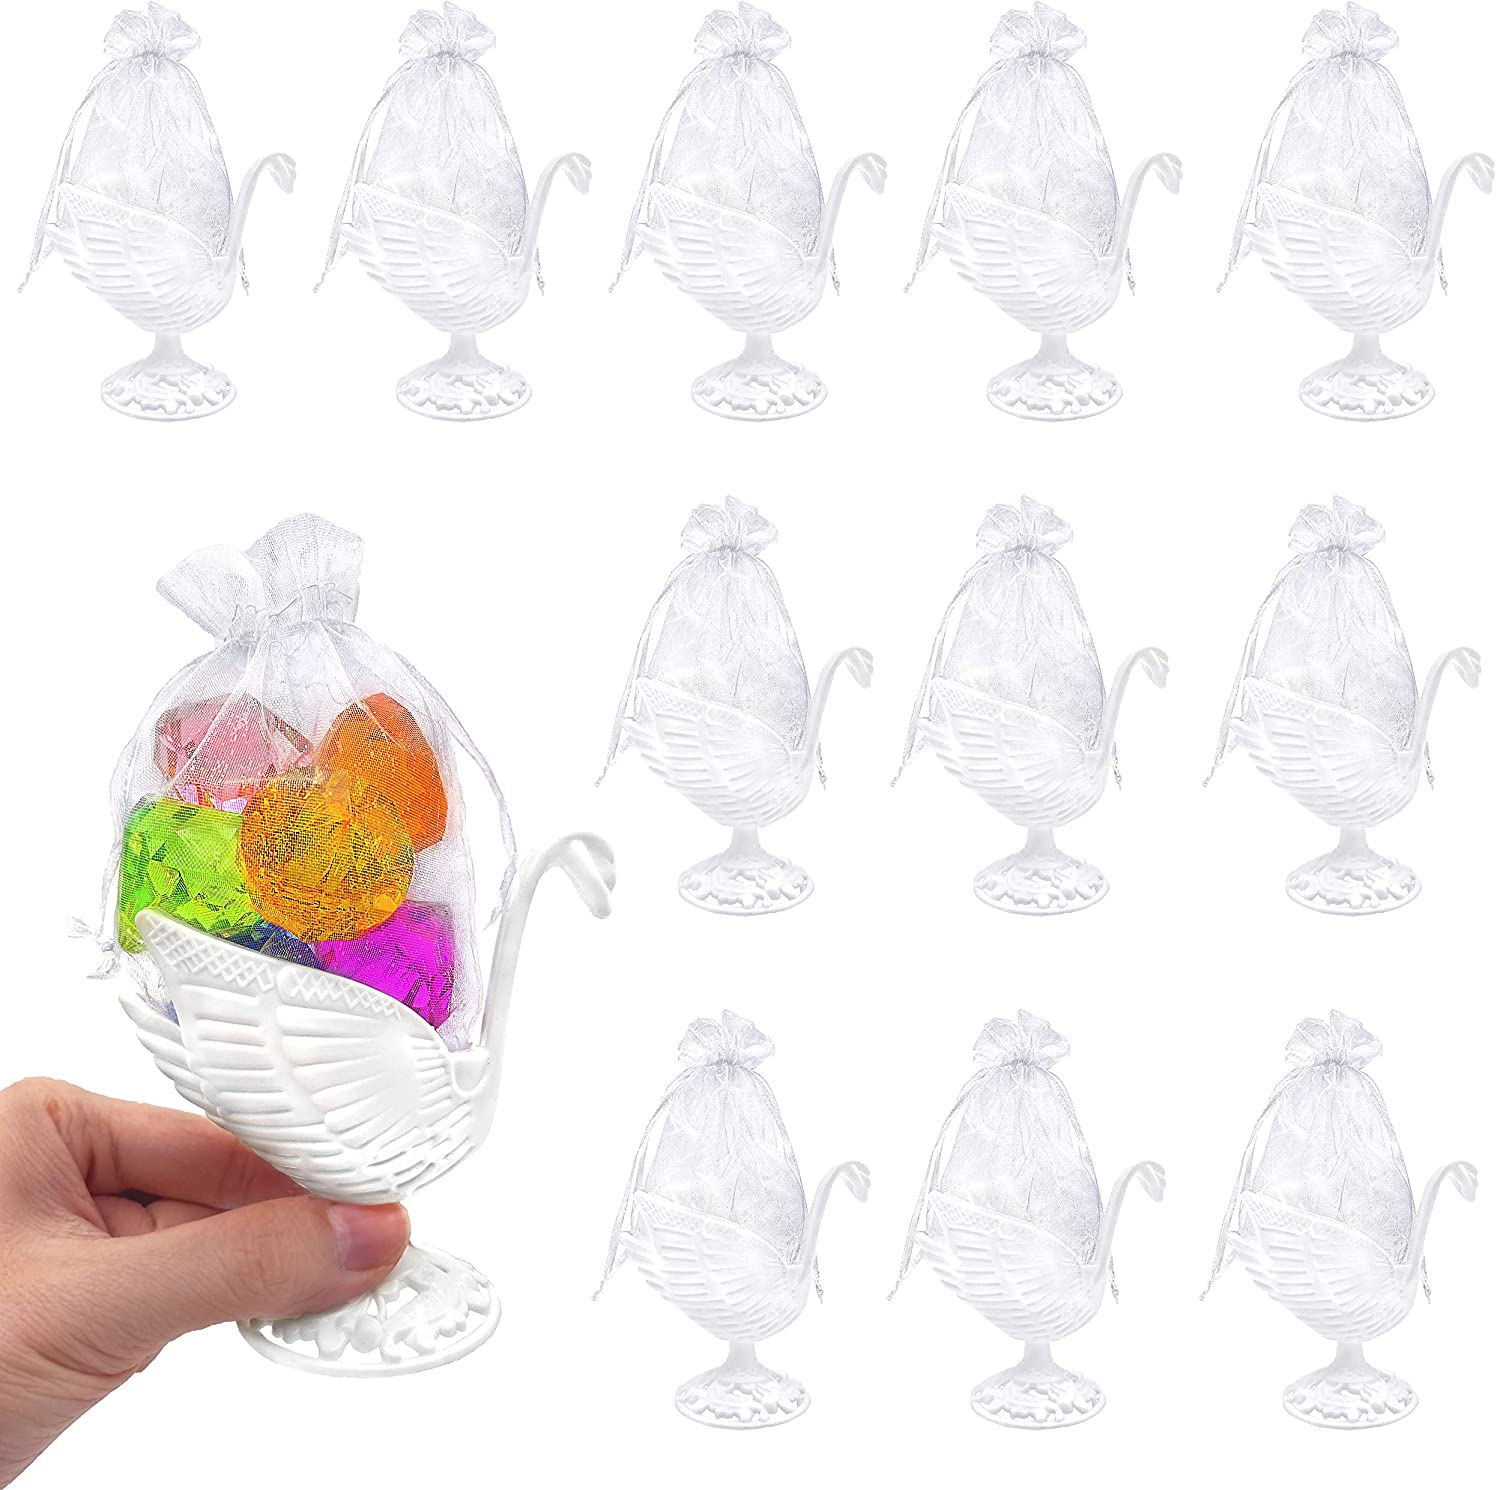 JC HUMMINGBIRD Fillable Swan with Pouch Party Favors, White, 12 Pieces